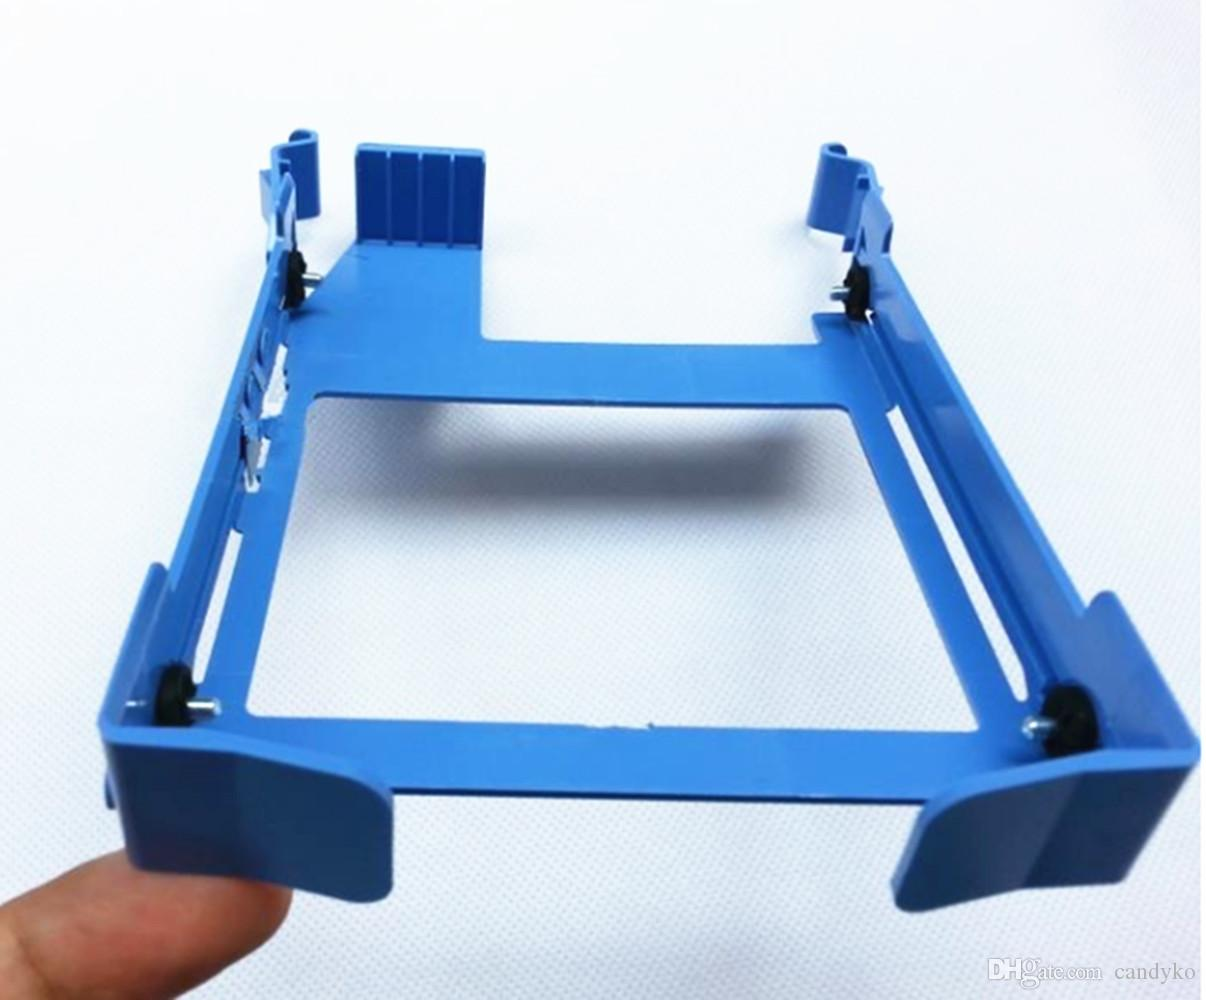 2019 3 5 Inch HDD Hard Drive Caddy Bracket For Dell Optiplex 390 790 990  3010 7020 Server T3610 T1700 T20 SFF MT Computer/Precision Workstations  From